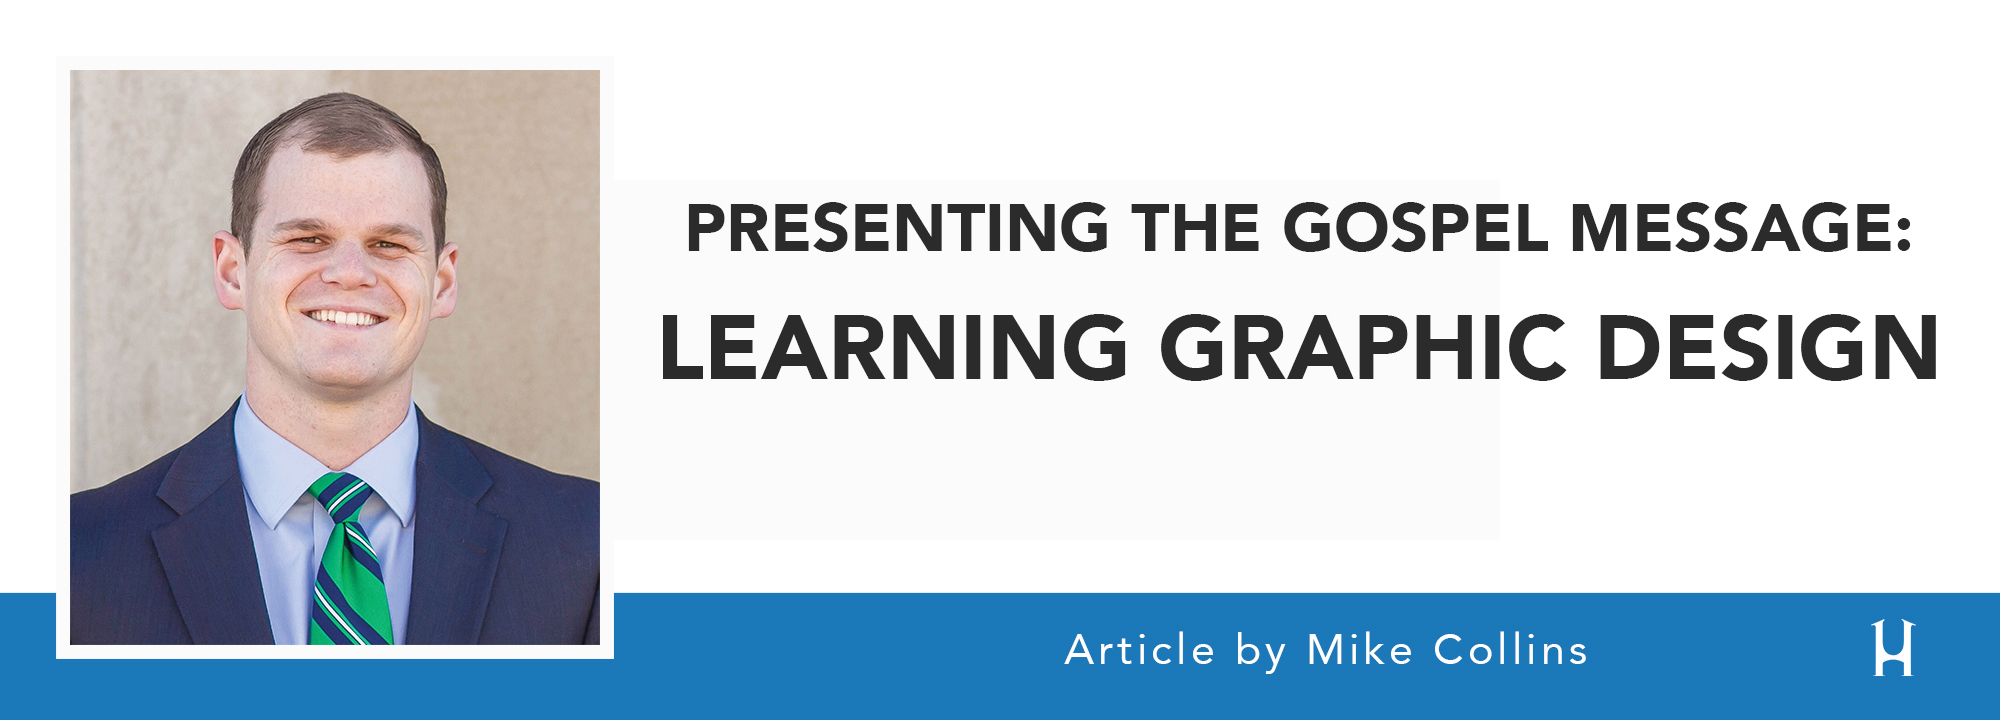 Presenting the Gospel Message: Learning Graphic Design [ARTICLE - Mike Collins]